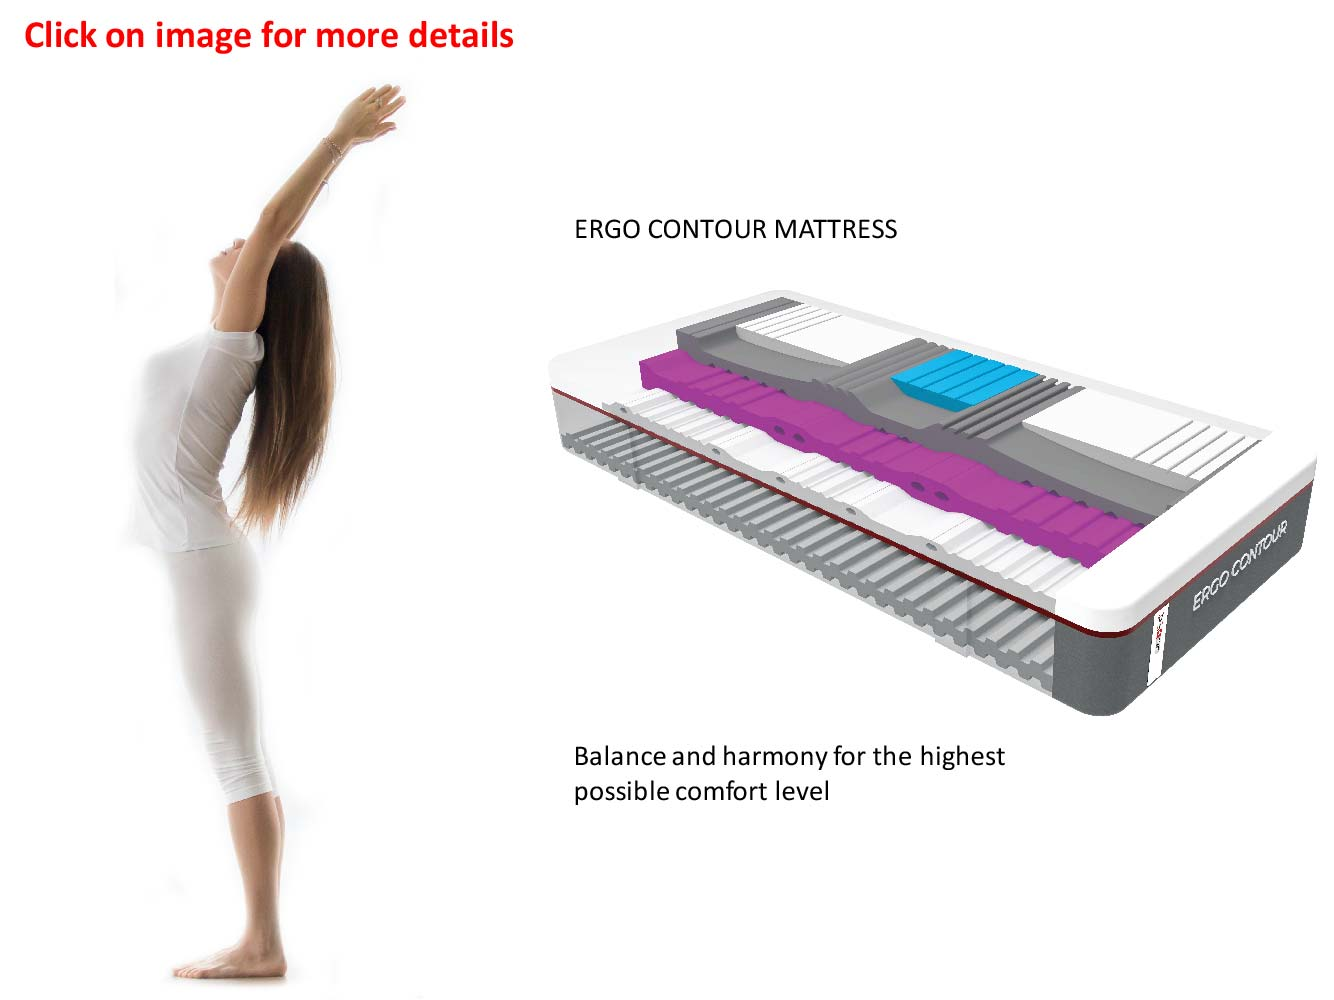 Swissaire True Ergonomics - Ergo Contour Mattress